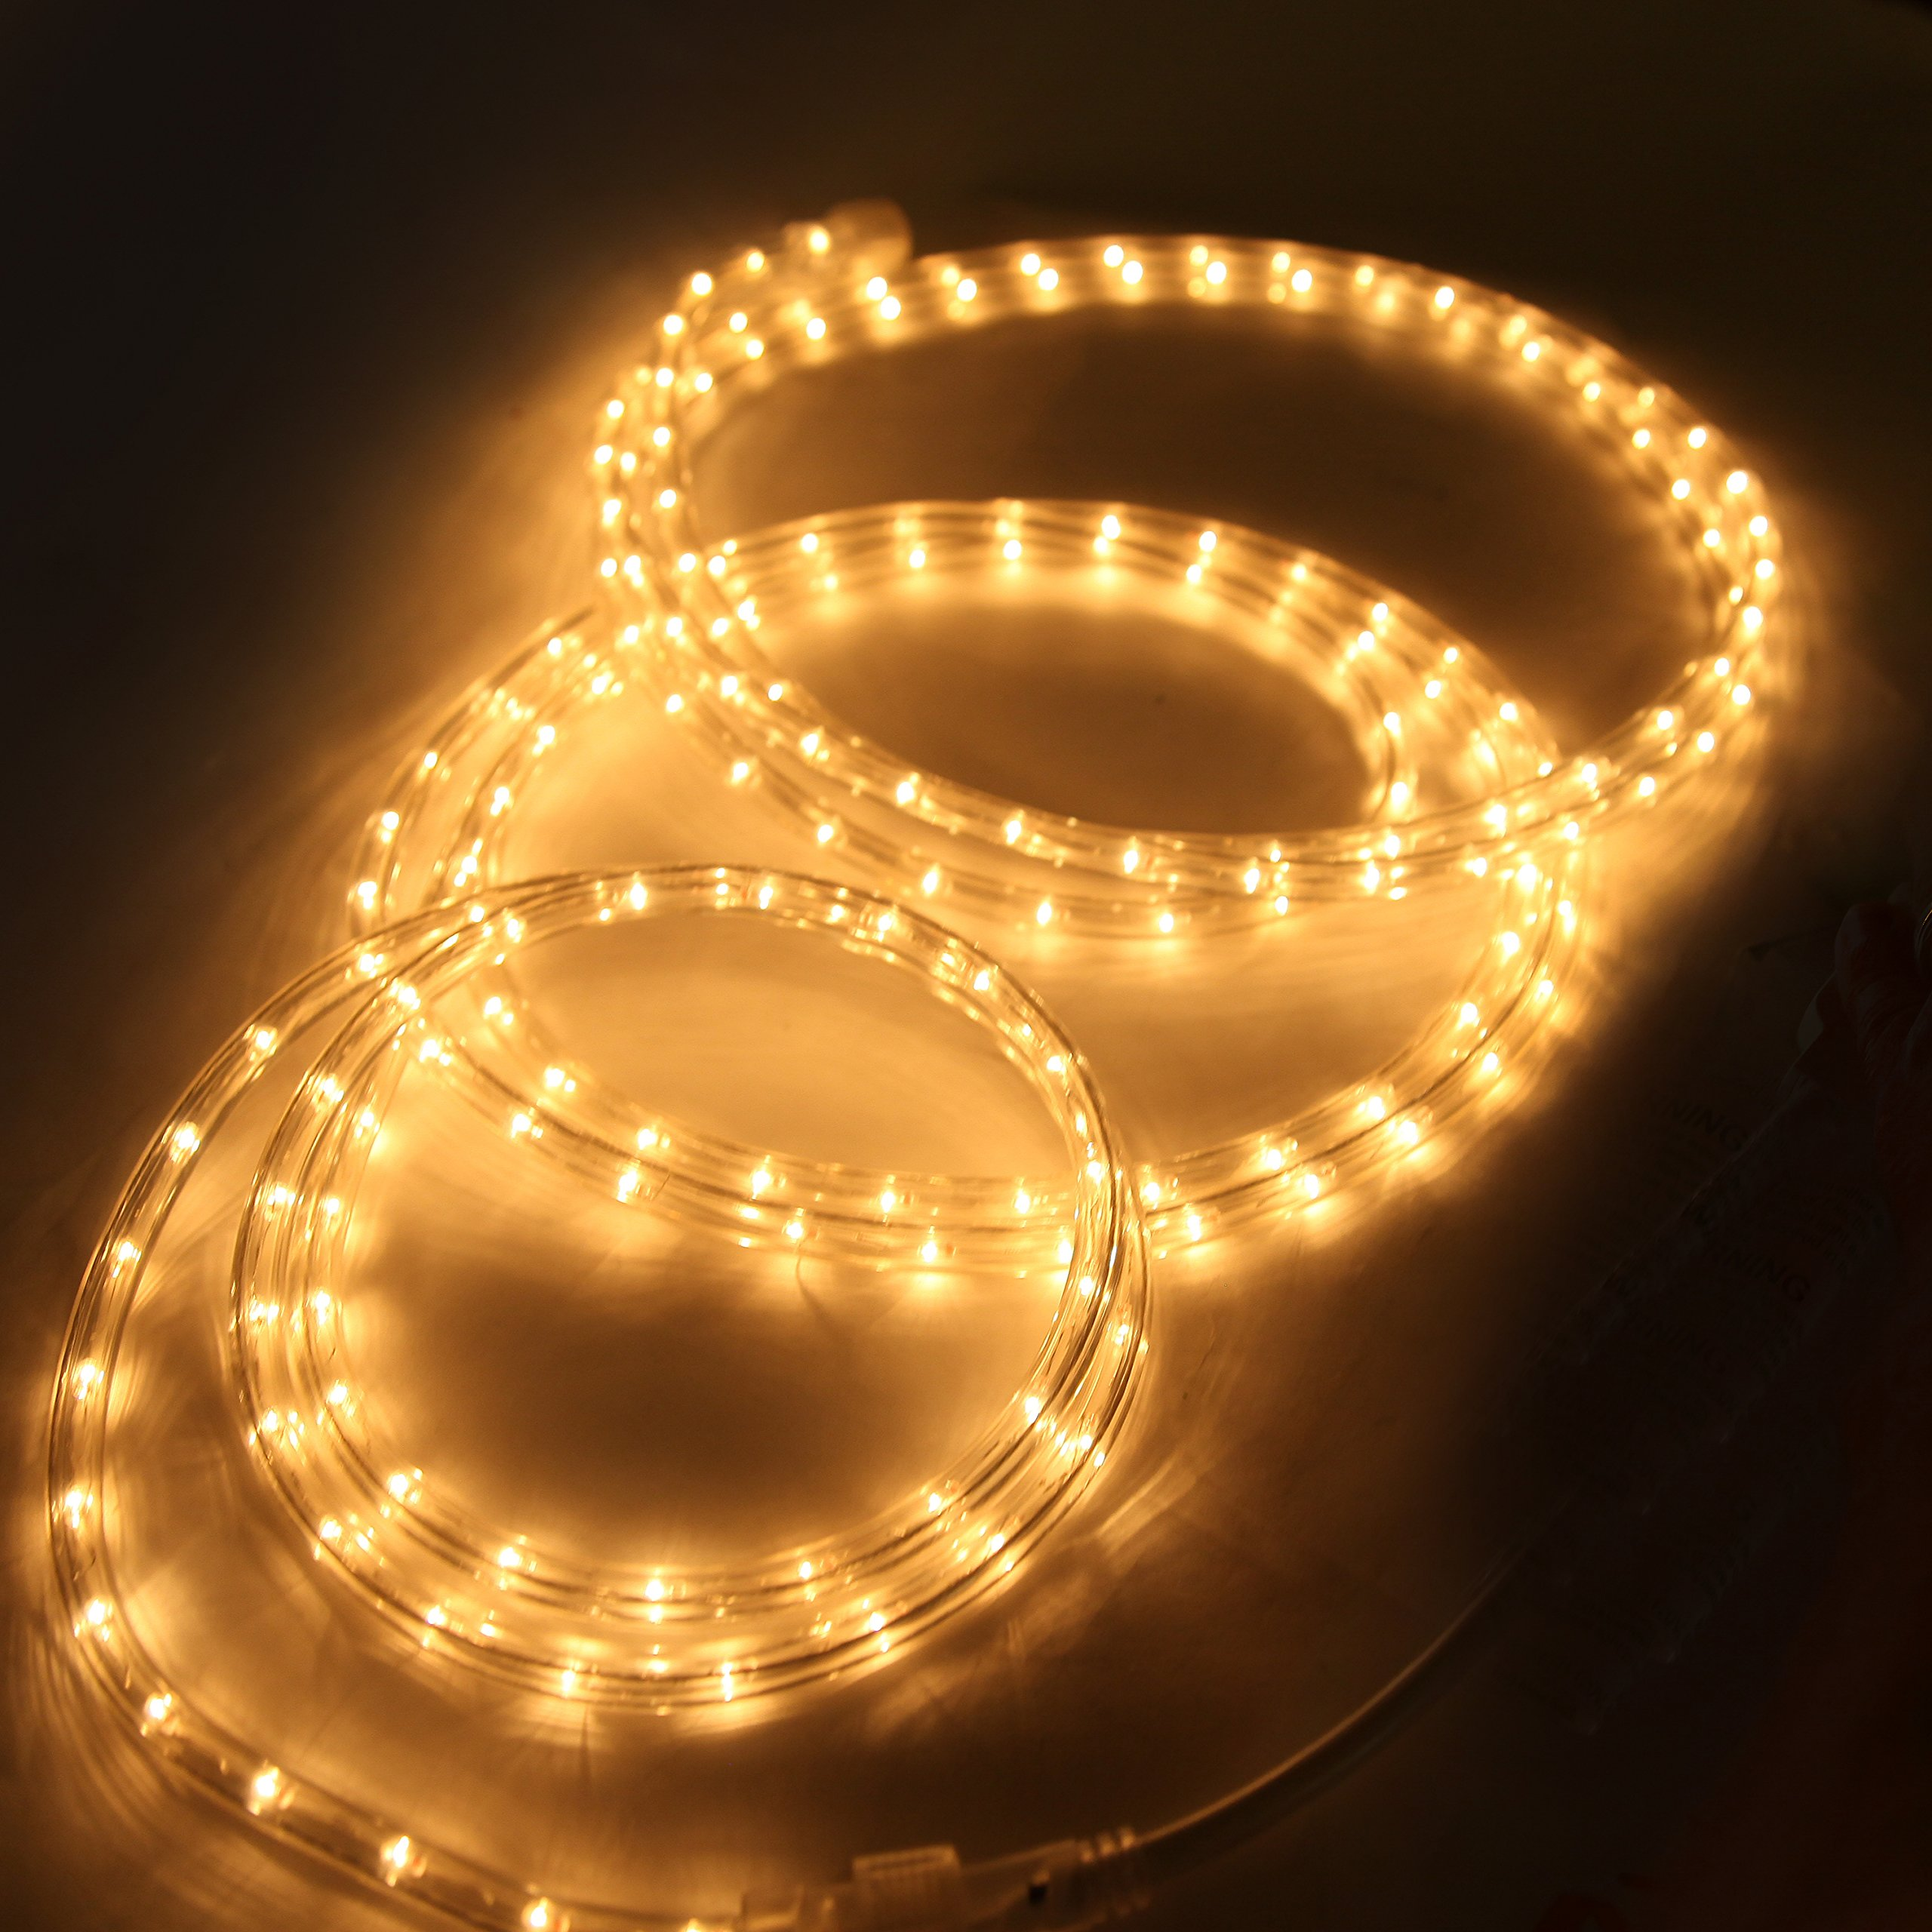 Indoor and outdoor rope lights 18 feet 216 clear incandescent indoor and outdoor rope lights 18 feet 216 clear incandescent rope light pack of 2 total 36 feet length aloadofball Choice Image